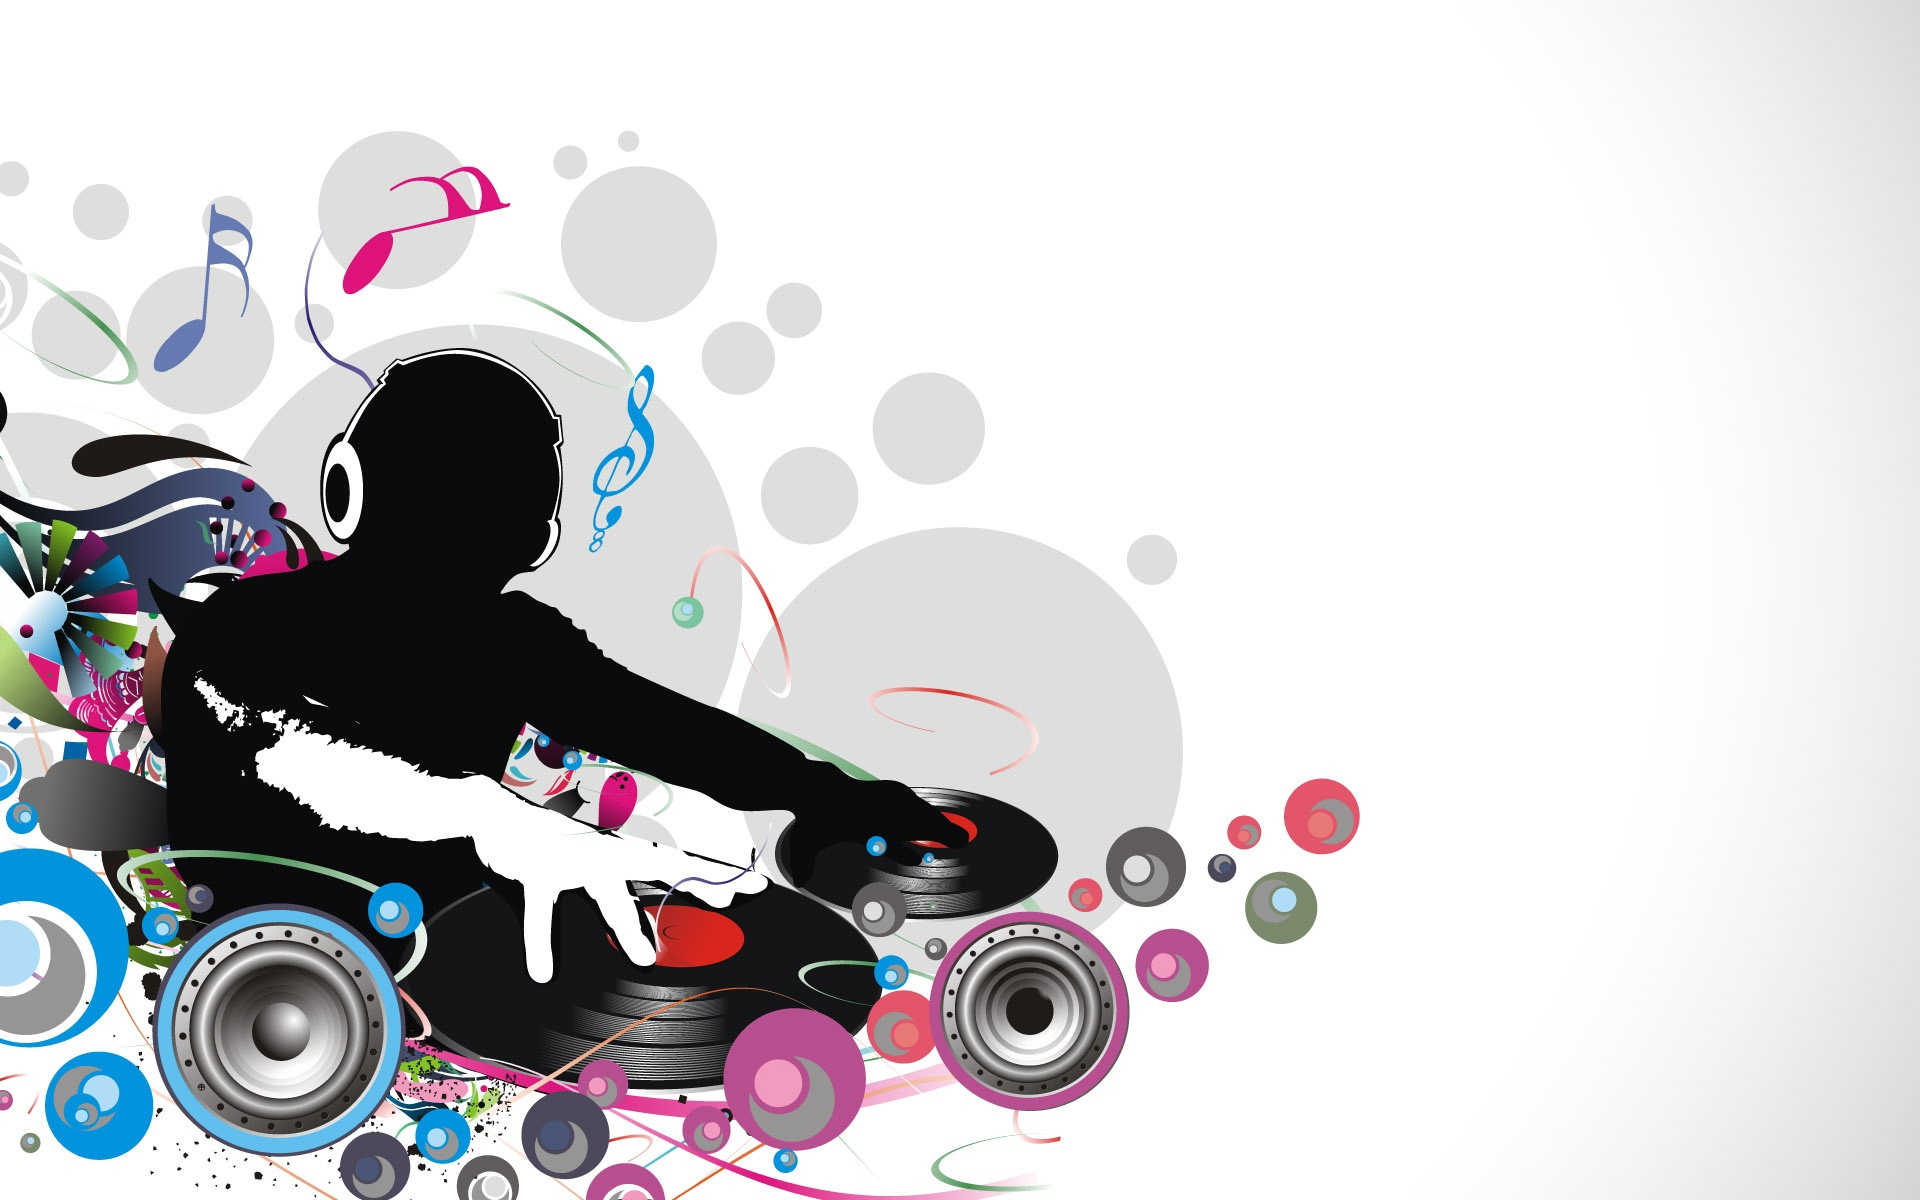 Dj Record Music Lovers   Stock Photos Images HD Wallpaper 1920x1200